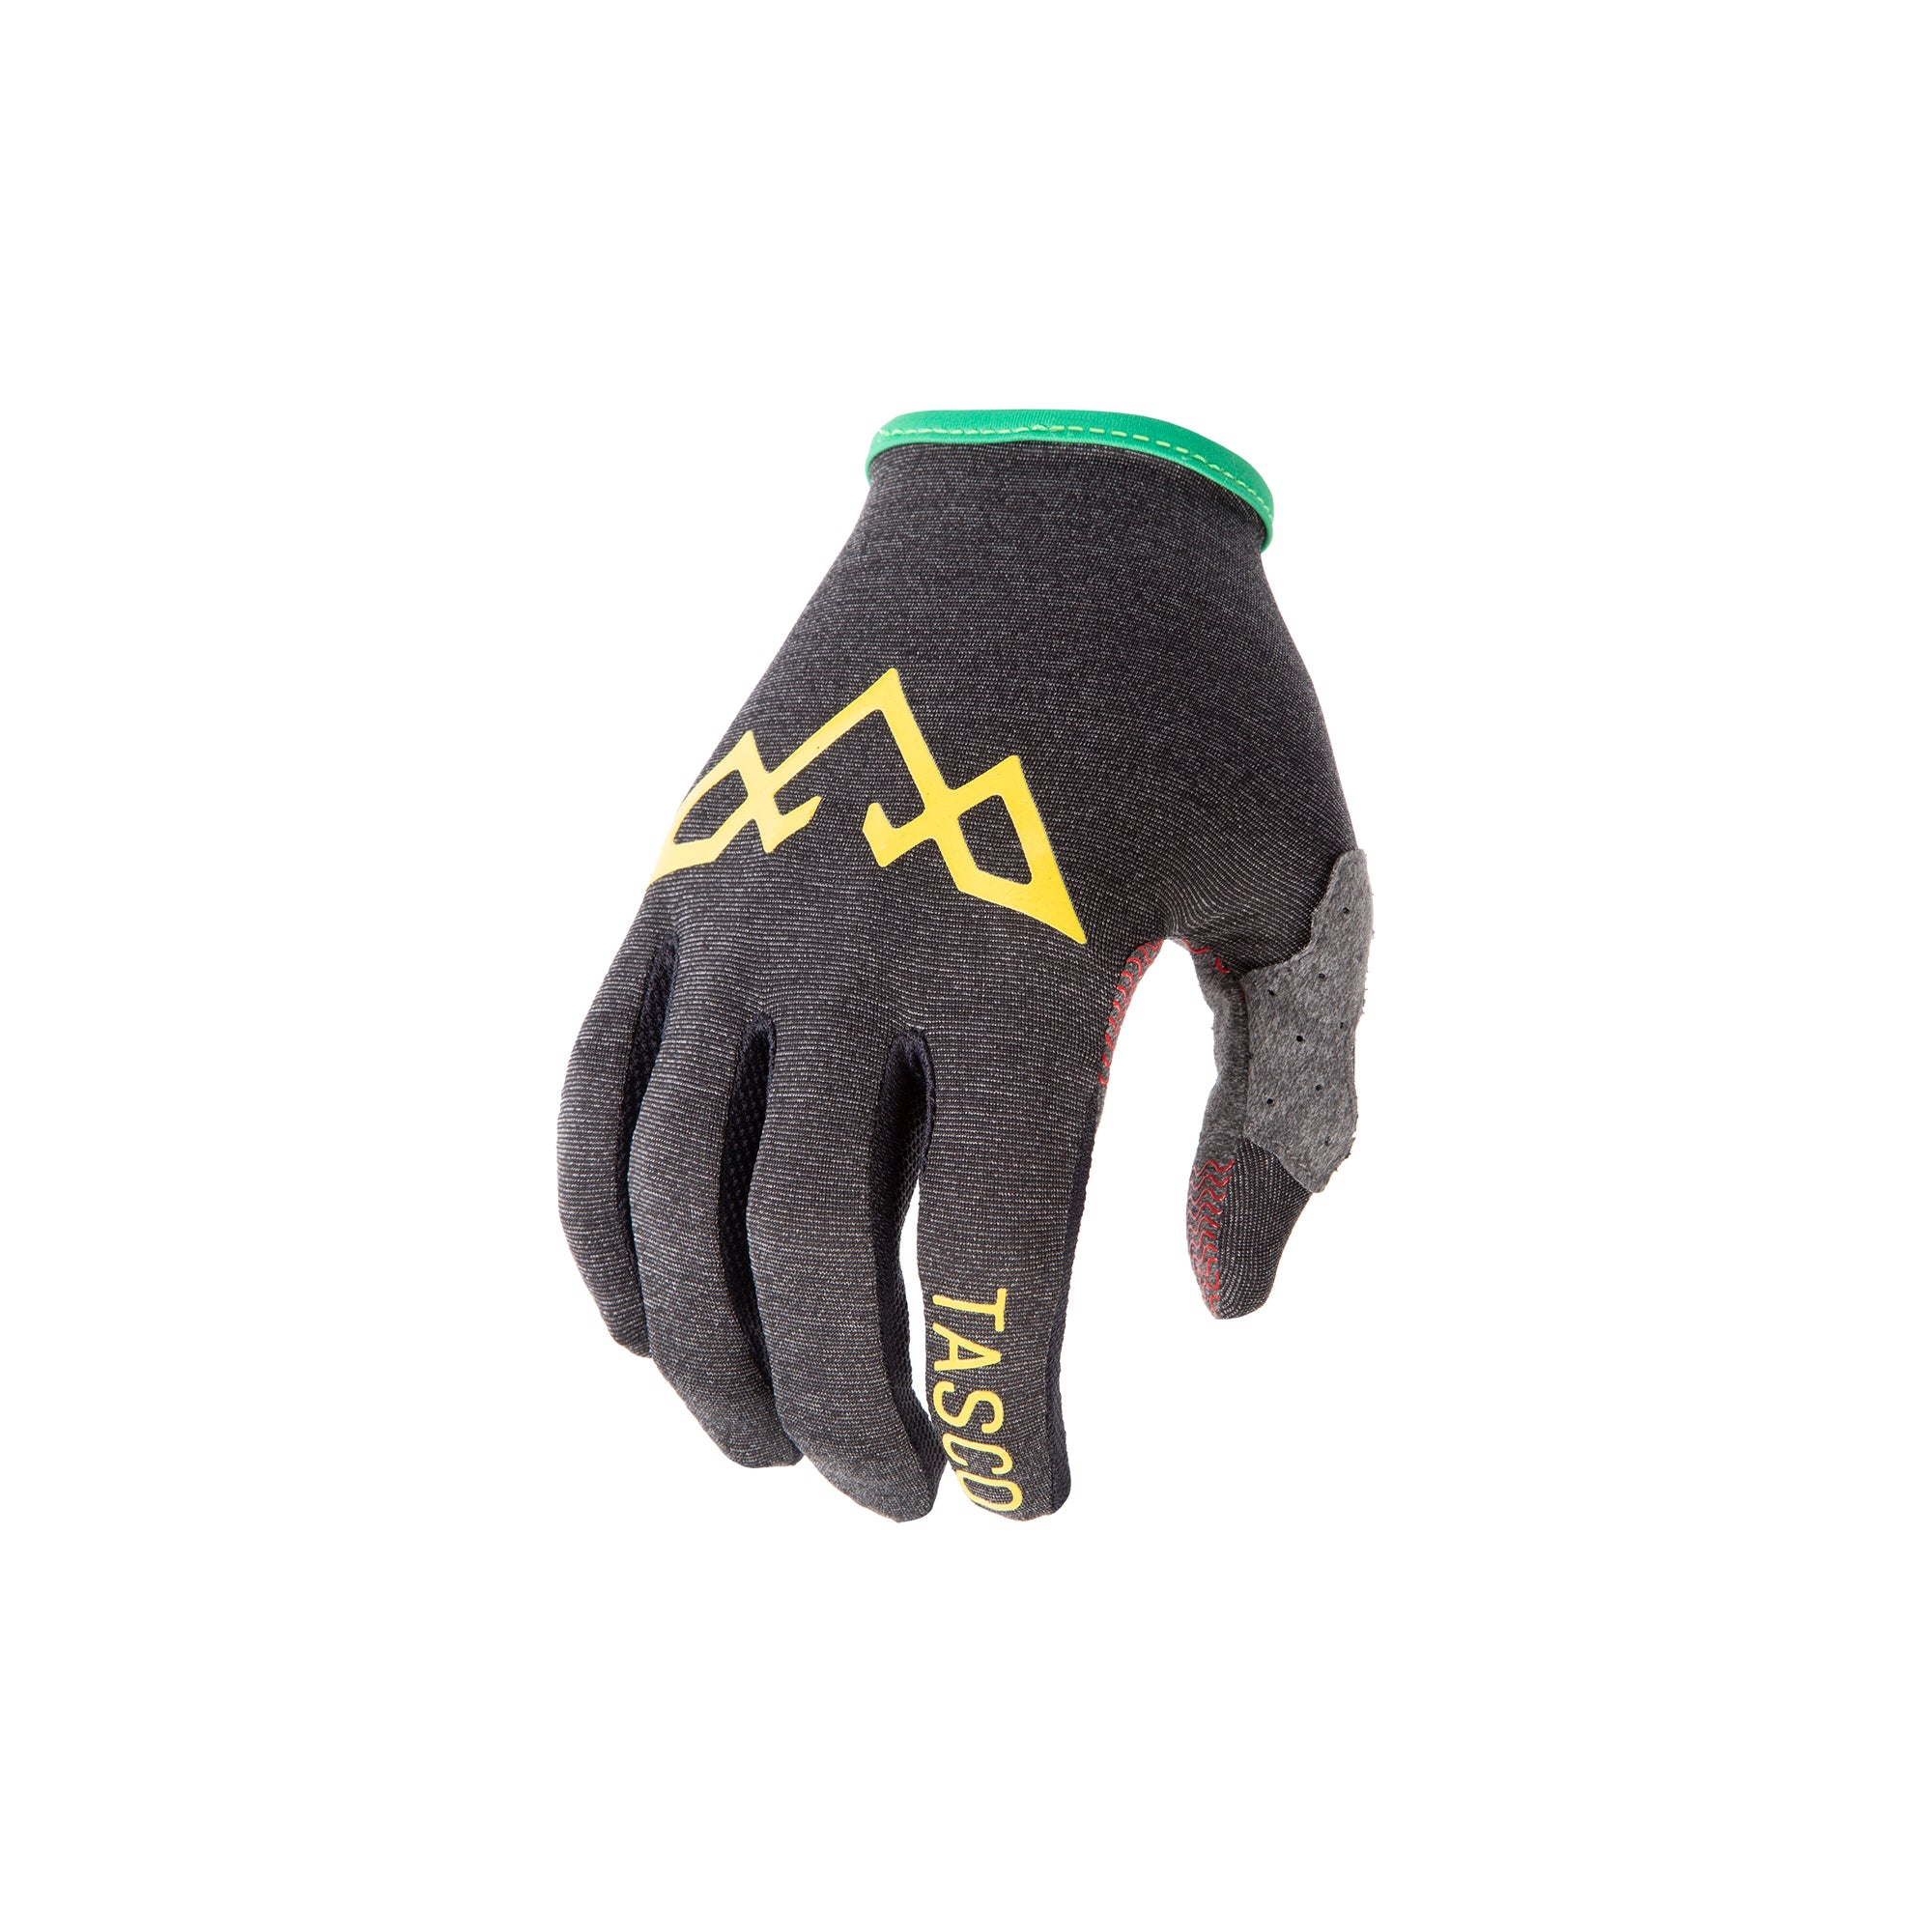 RECON Ultralight Cycling Gloves - The Bob